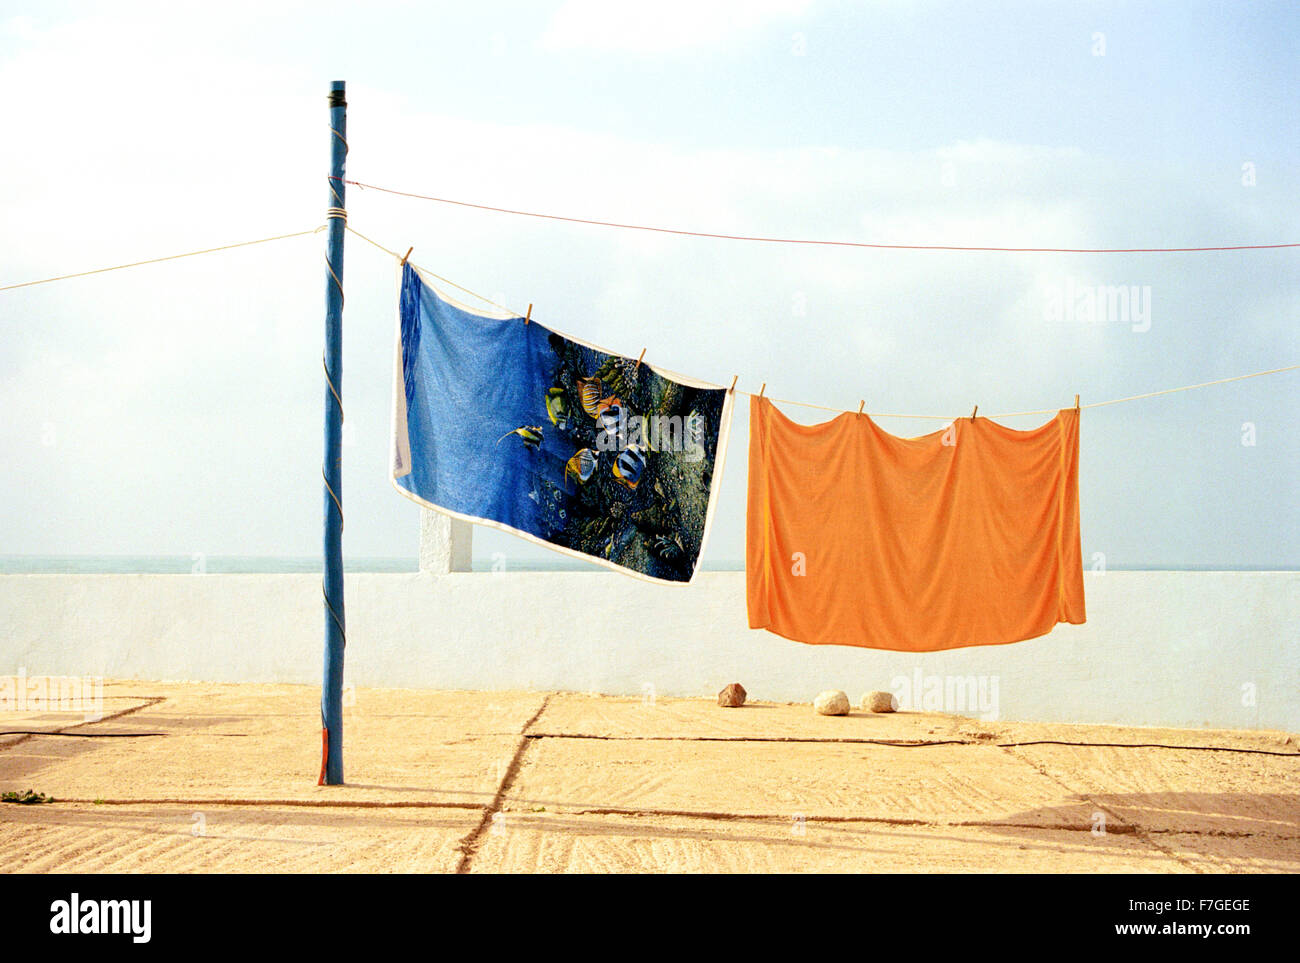 Colorful beach towels hand to dry at a camping ground in Sidi Ifni. Morocco - Stock Image